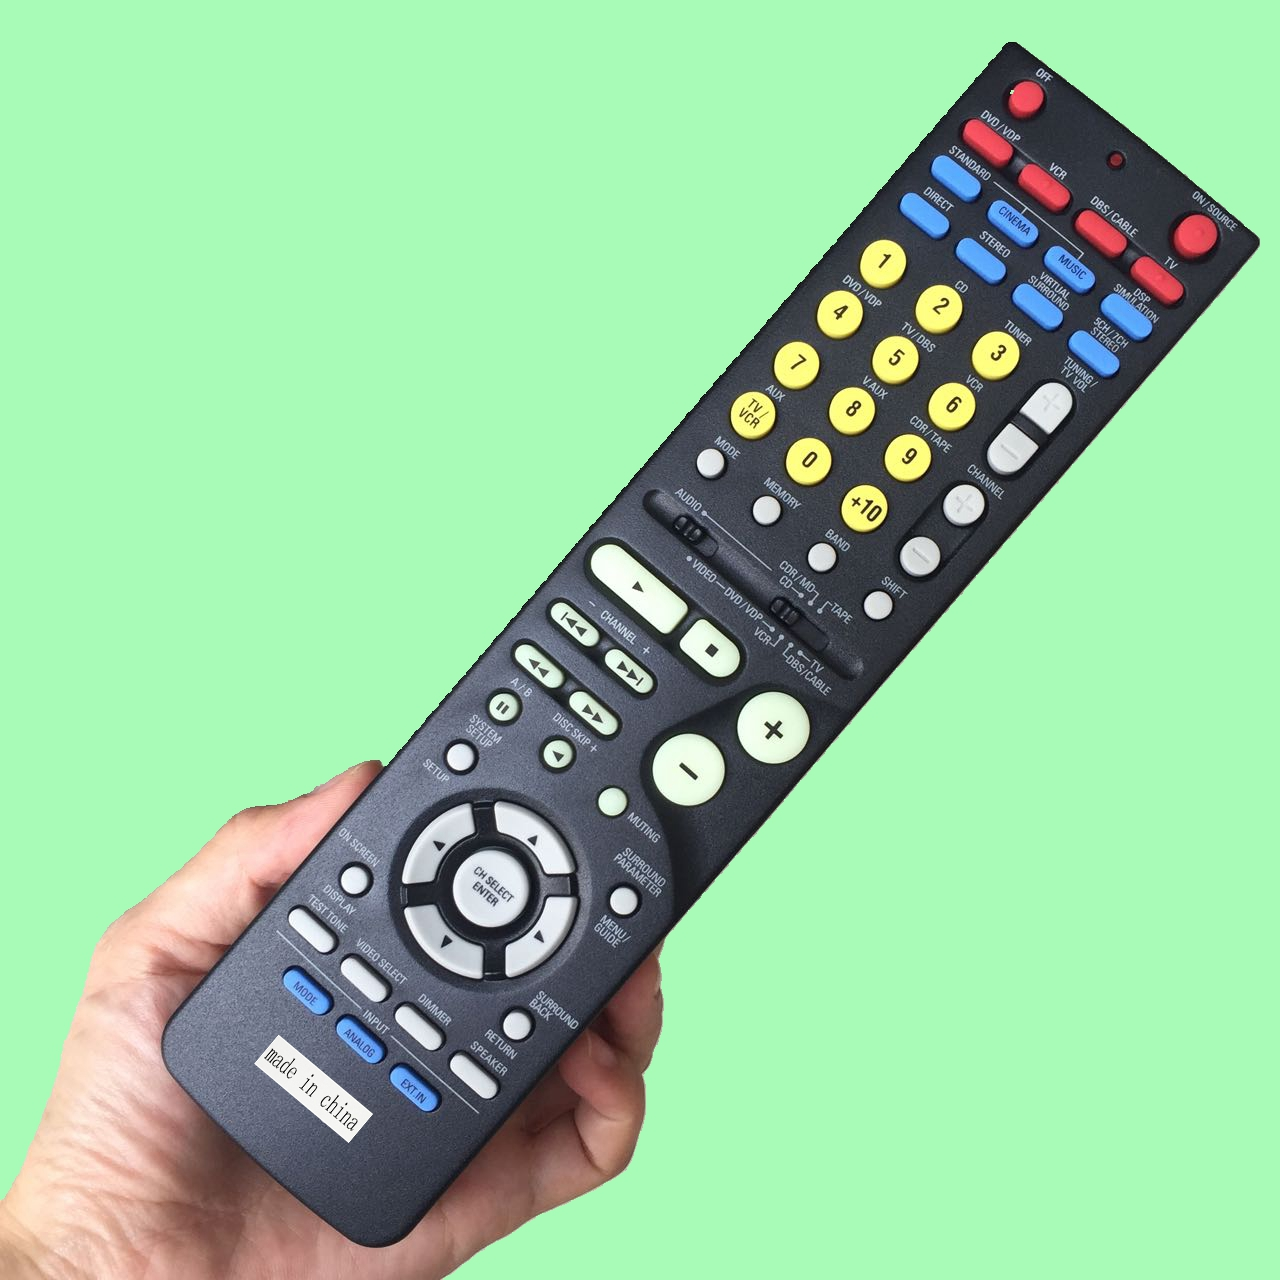 Remote control original rc 1006 for denon home theater dvd ...